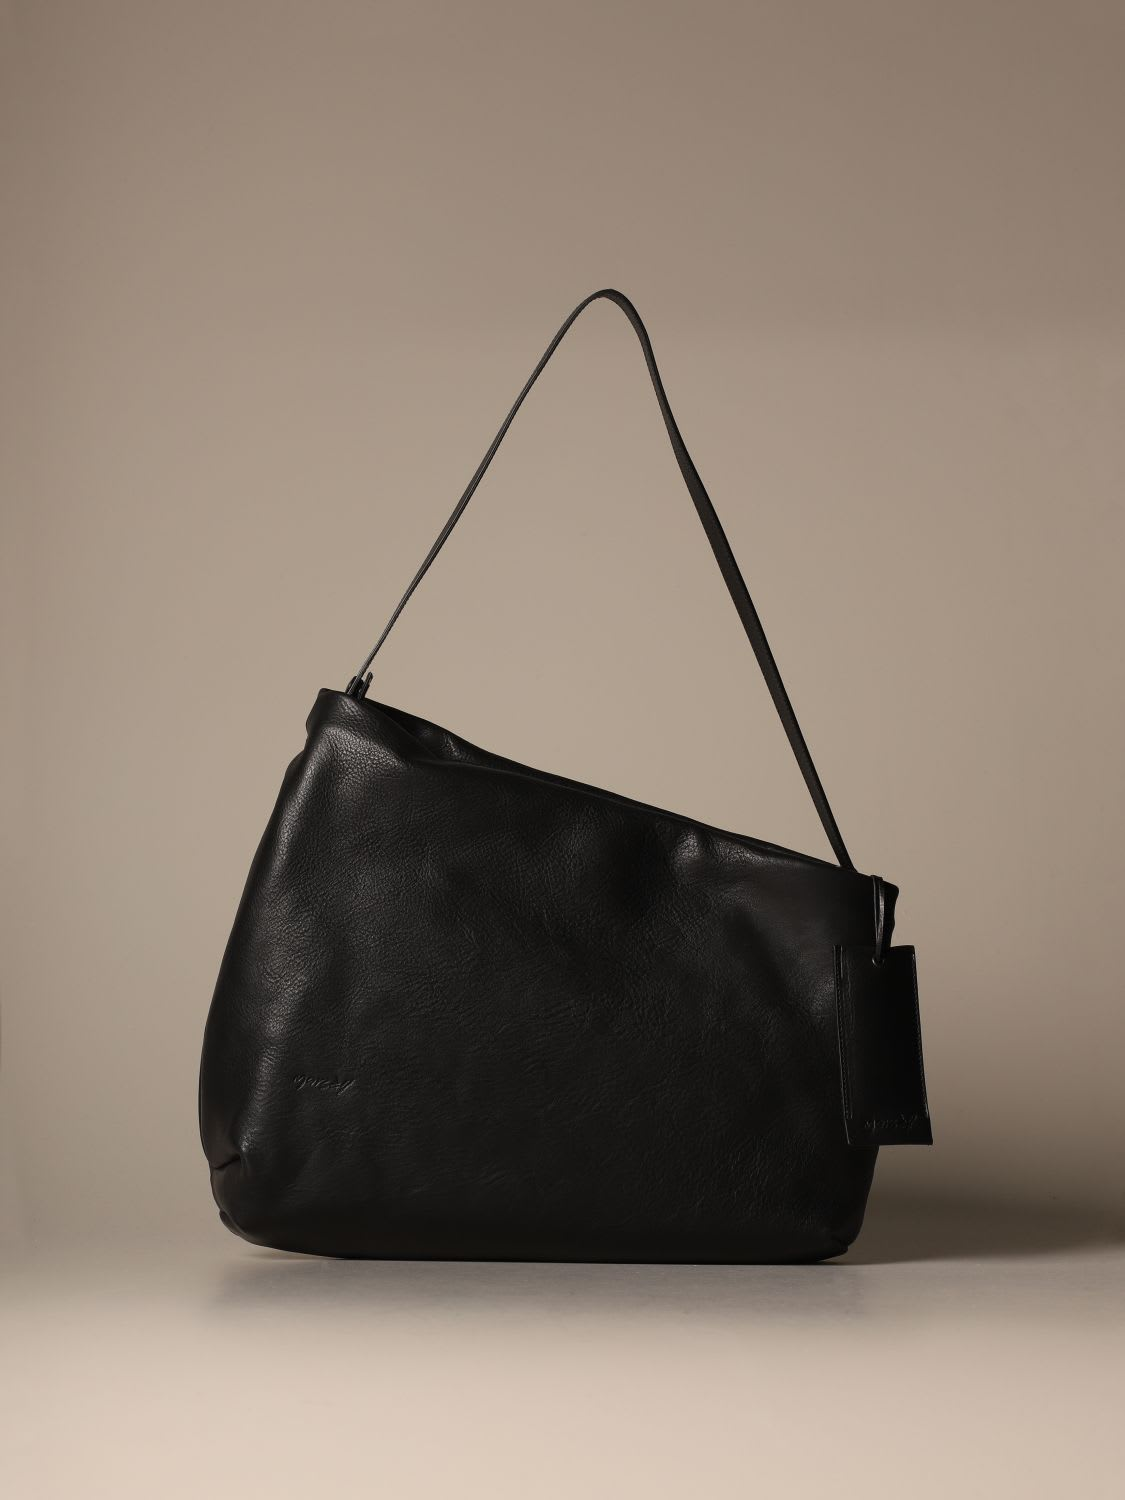 Marsell Shoulder Bag Marsèll Ghost Bag In Volonata Leather